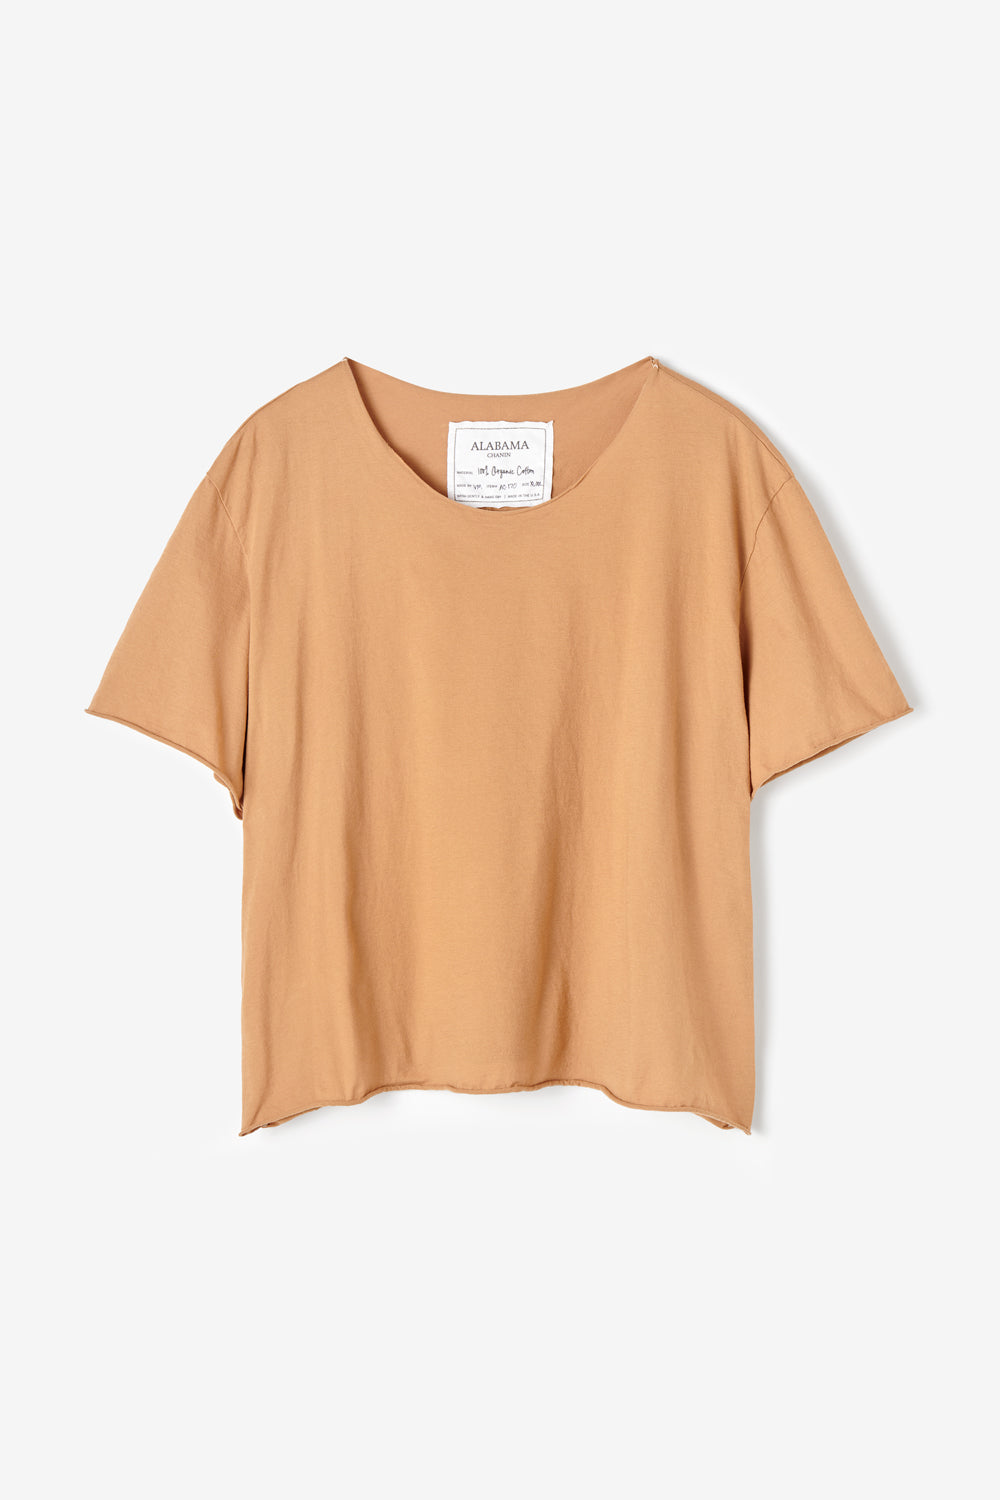 Alabama Chanin 100% Organic Cotton Top with Boat Neck in Camel